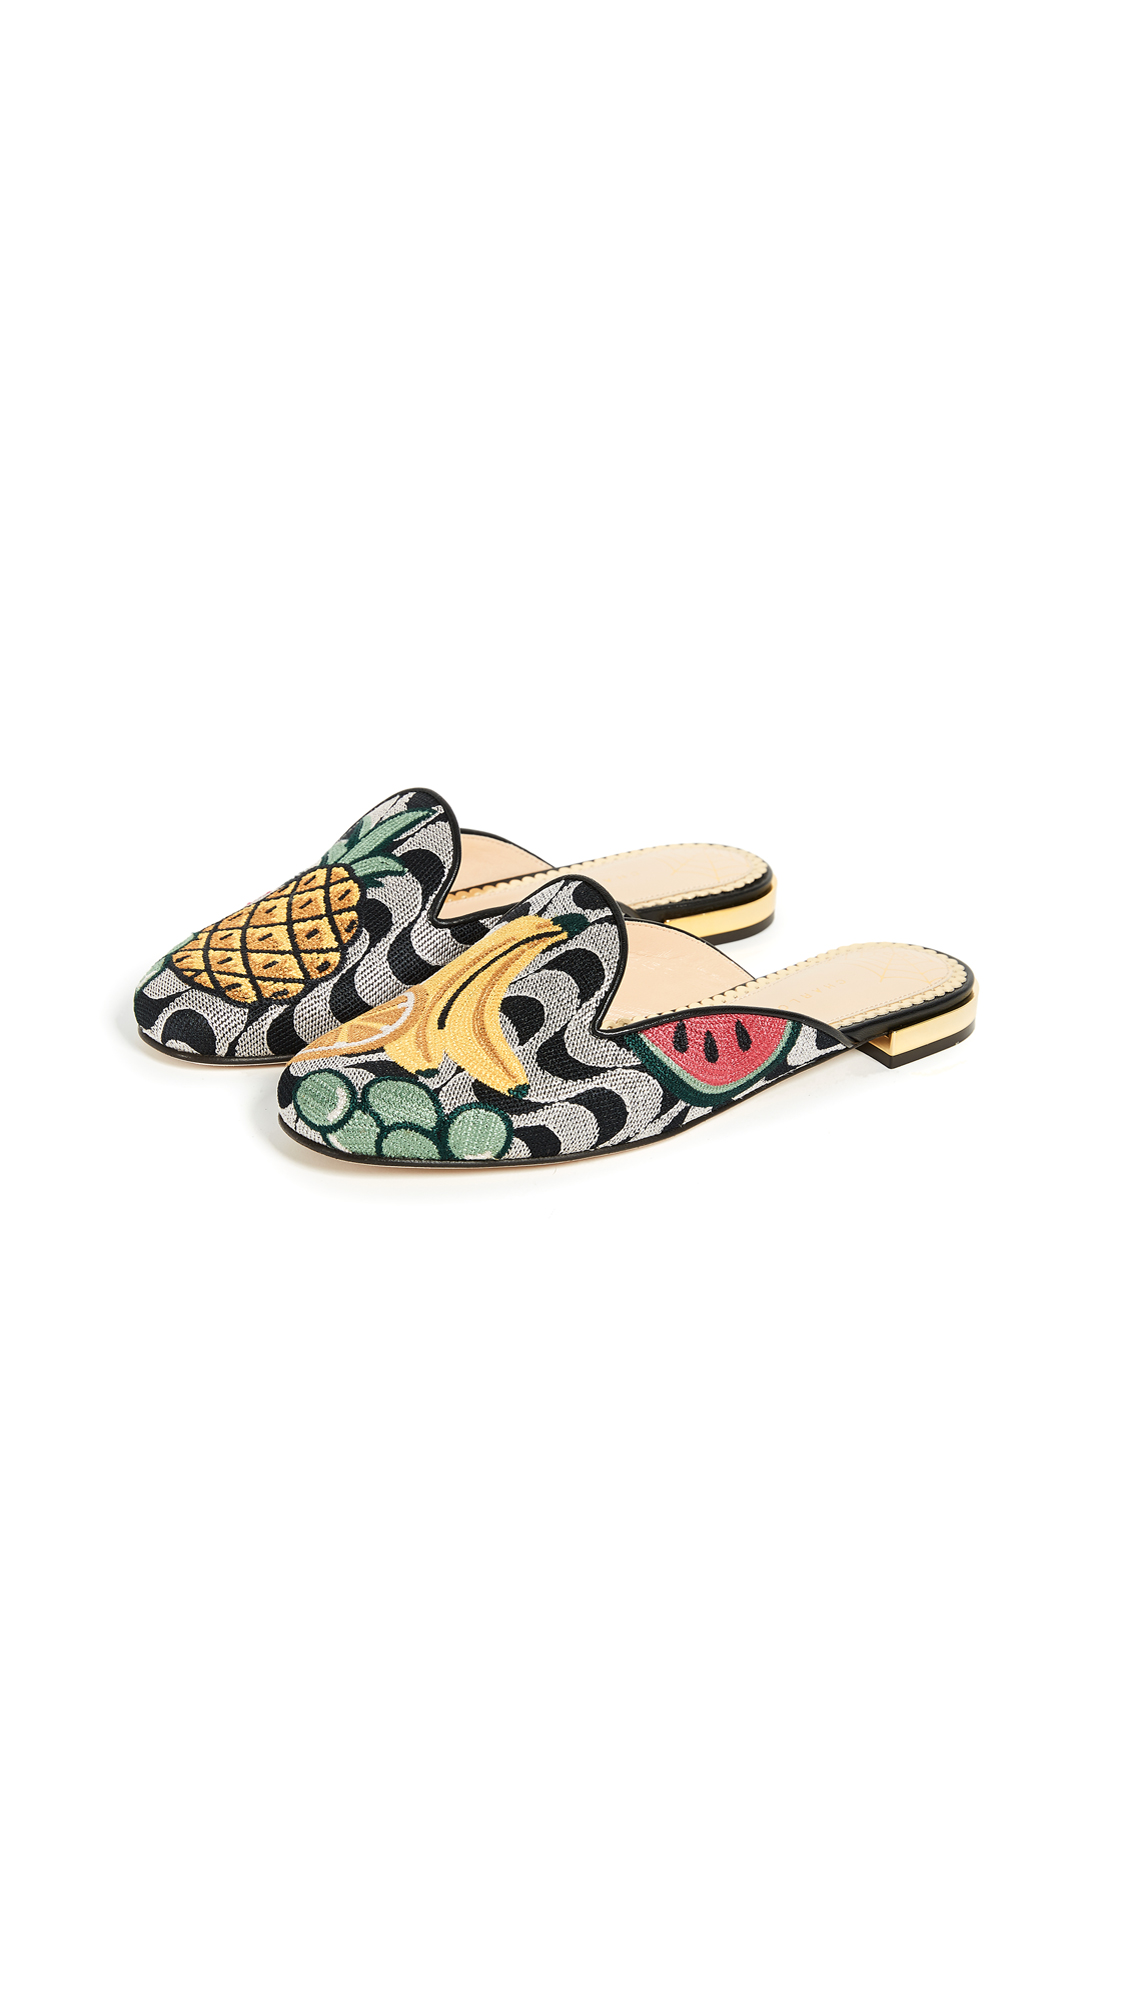 Charlotte Olympia Fruit Salad Slipper Mules - Multi